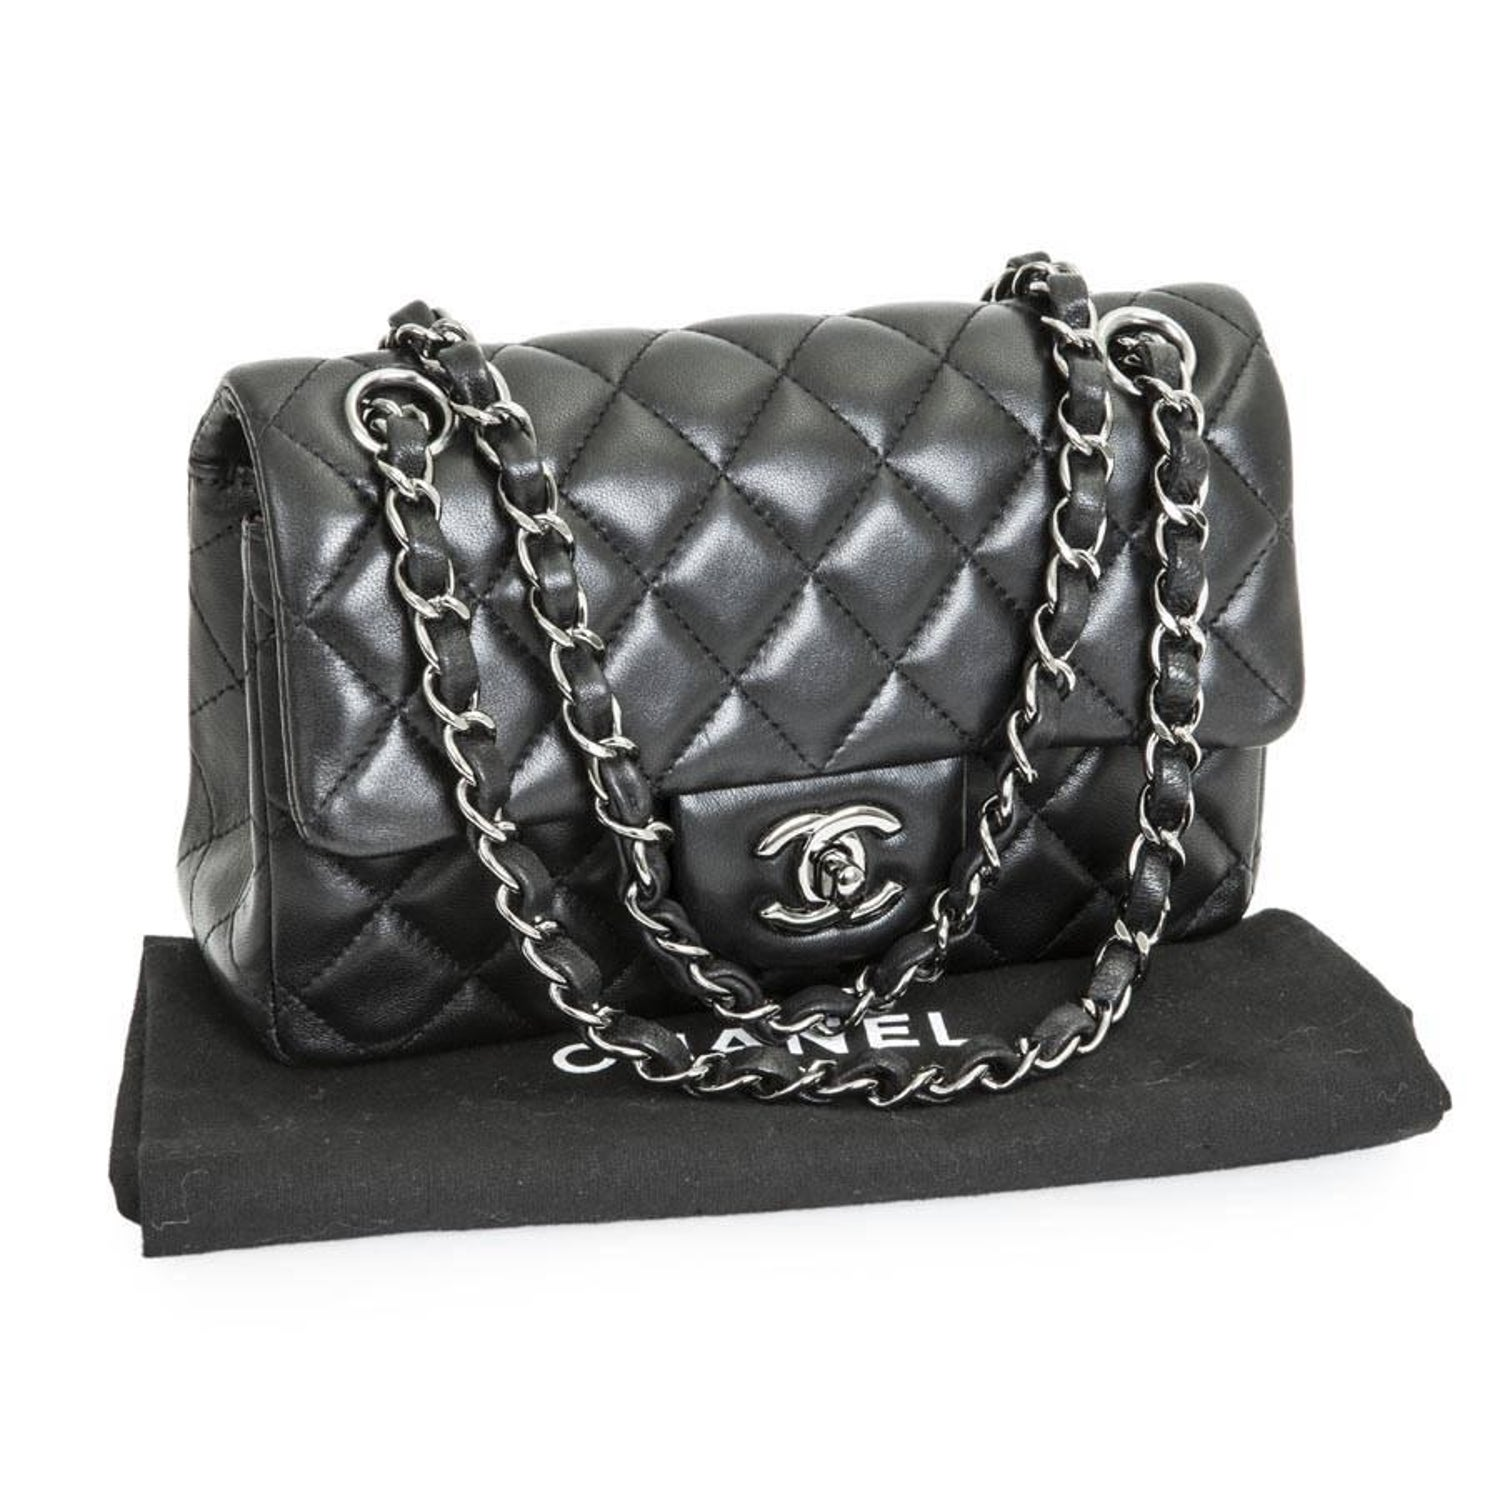 2c27dea7b01e CHANEL Mini  Timeless  Flap Bag in Quilted Smooth Black Leather at 1stdibs